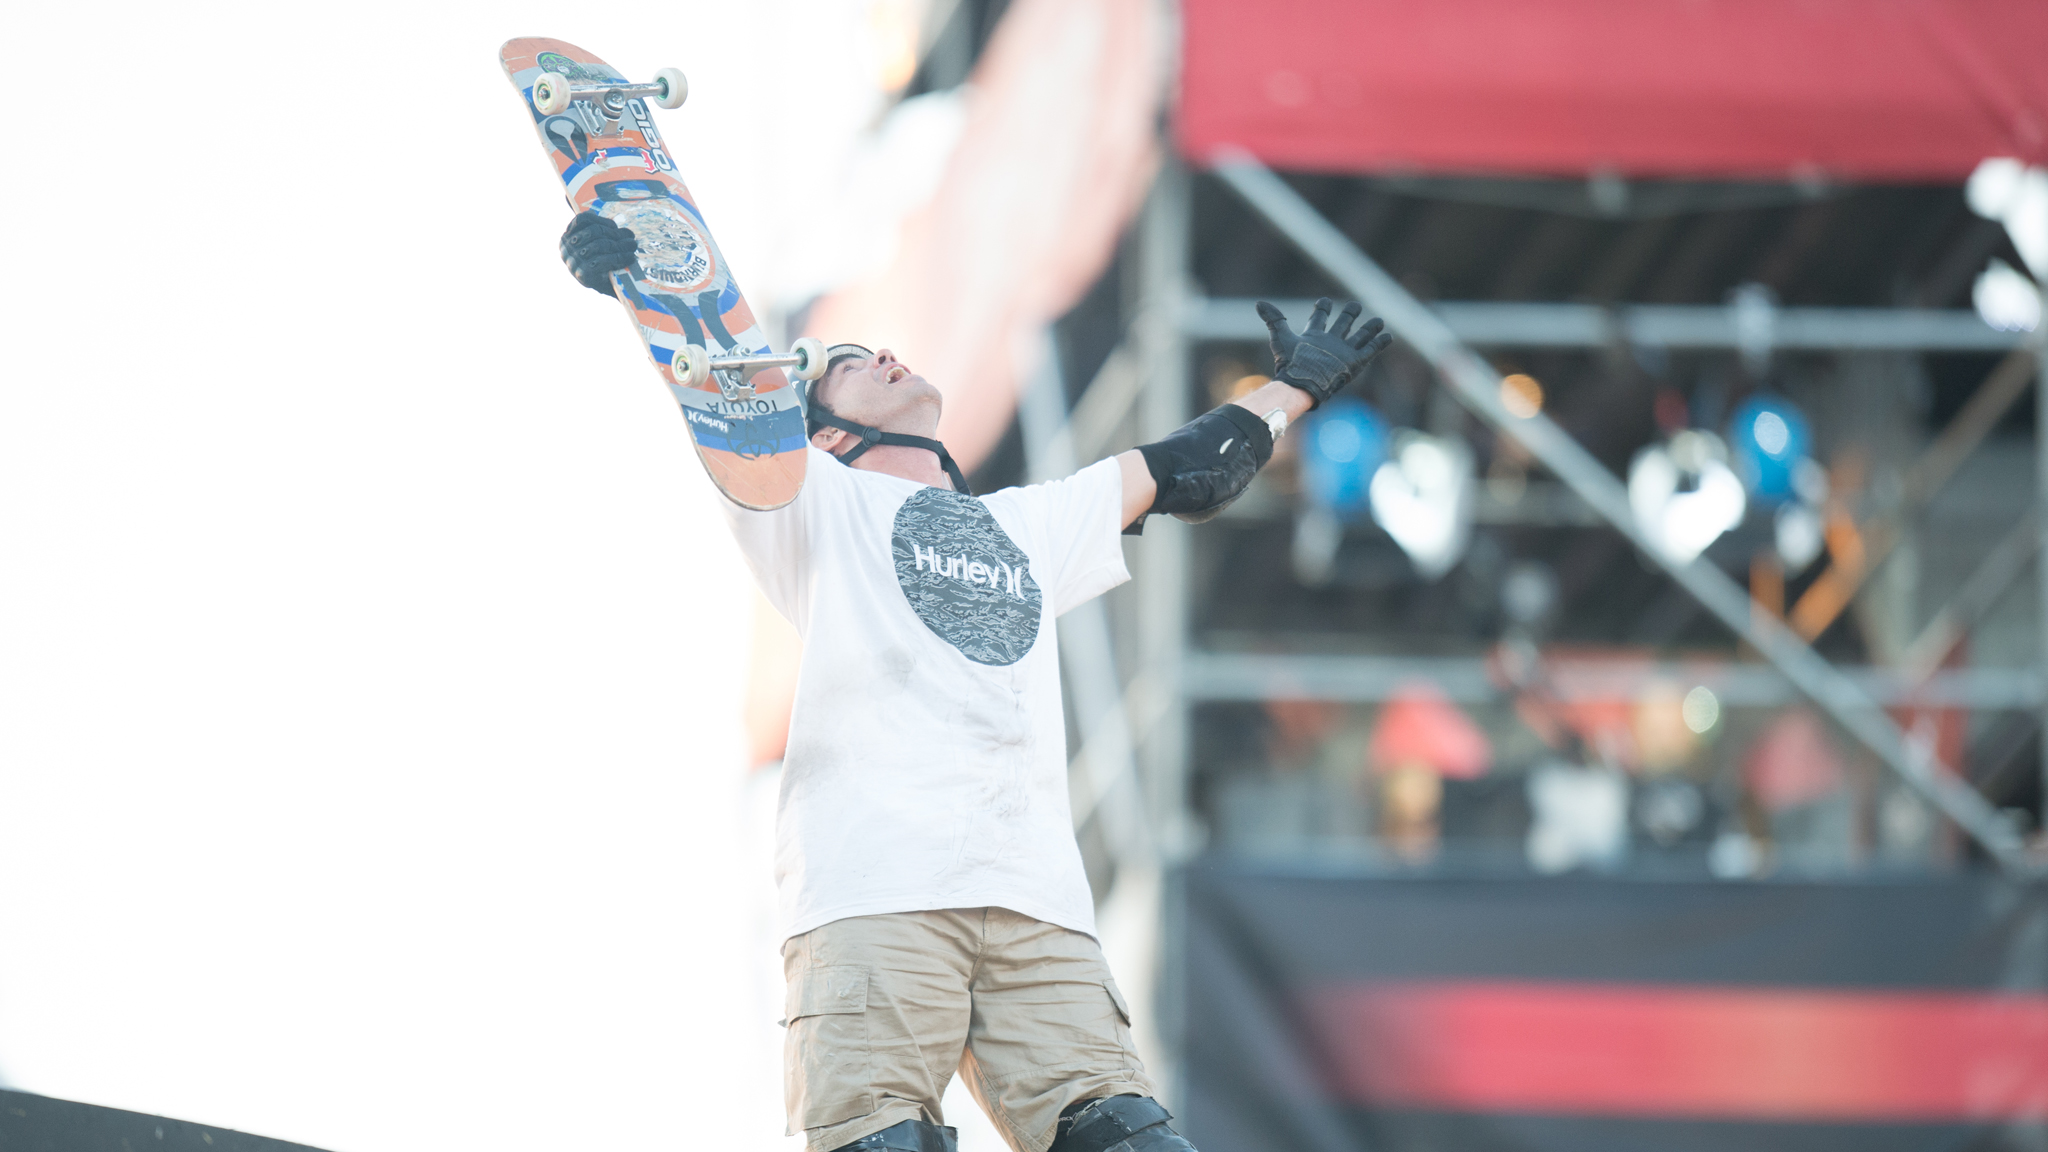 Brazilian skateboard pro Bob Burnquist is invited to compete in Skateboard Big Air at X Games Foz do Iguau in April.